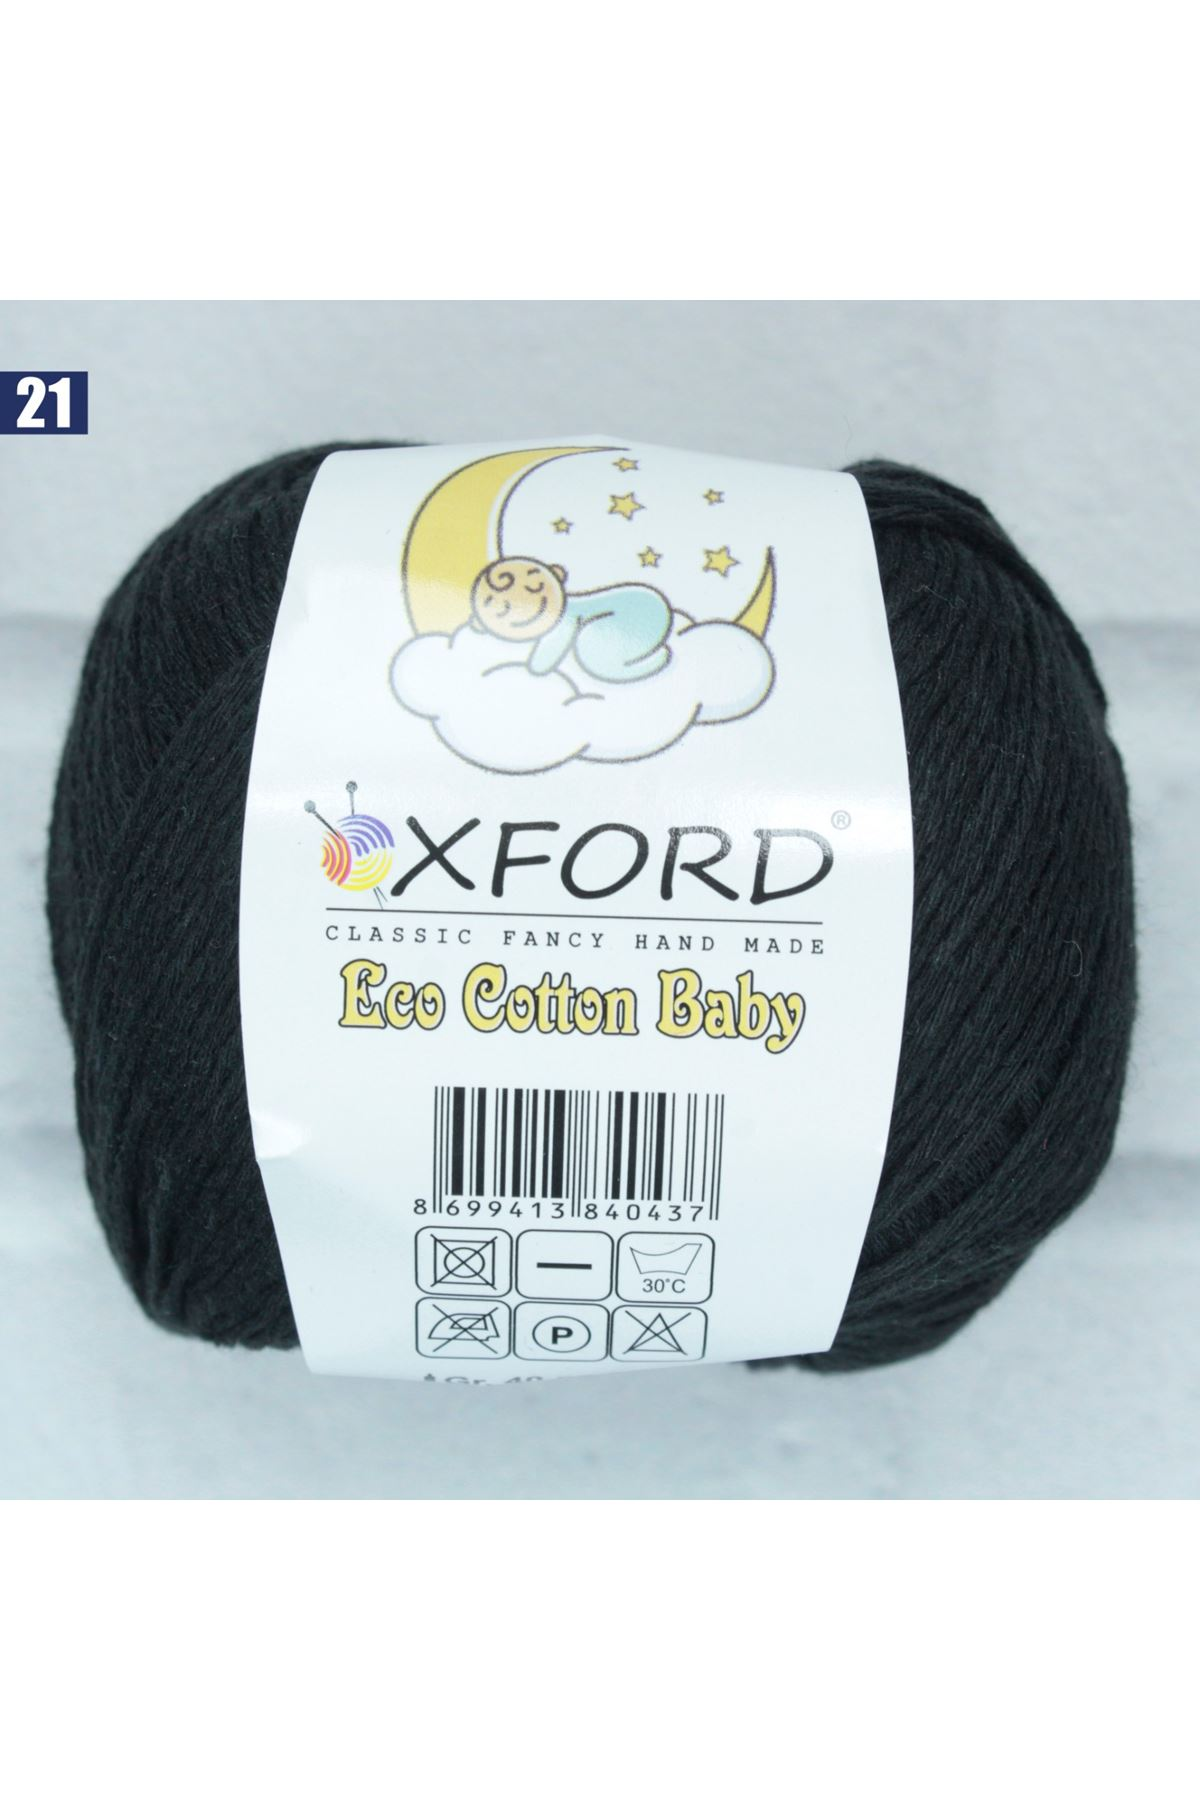 Oxford Eco Cotton Baby 21